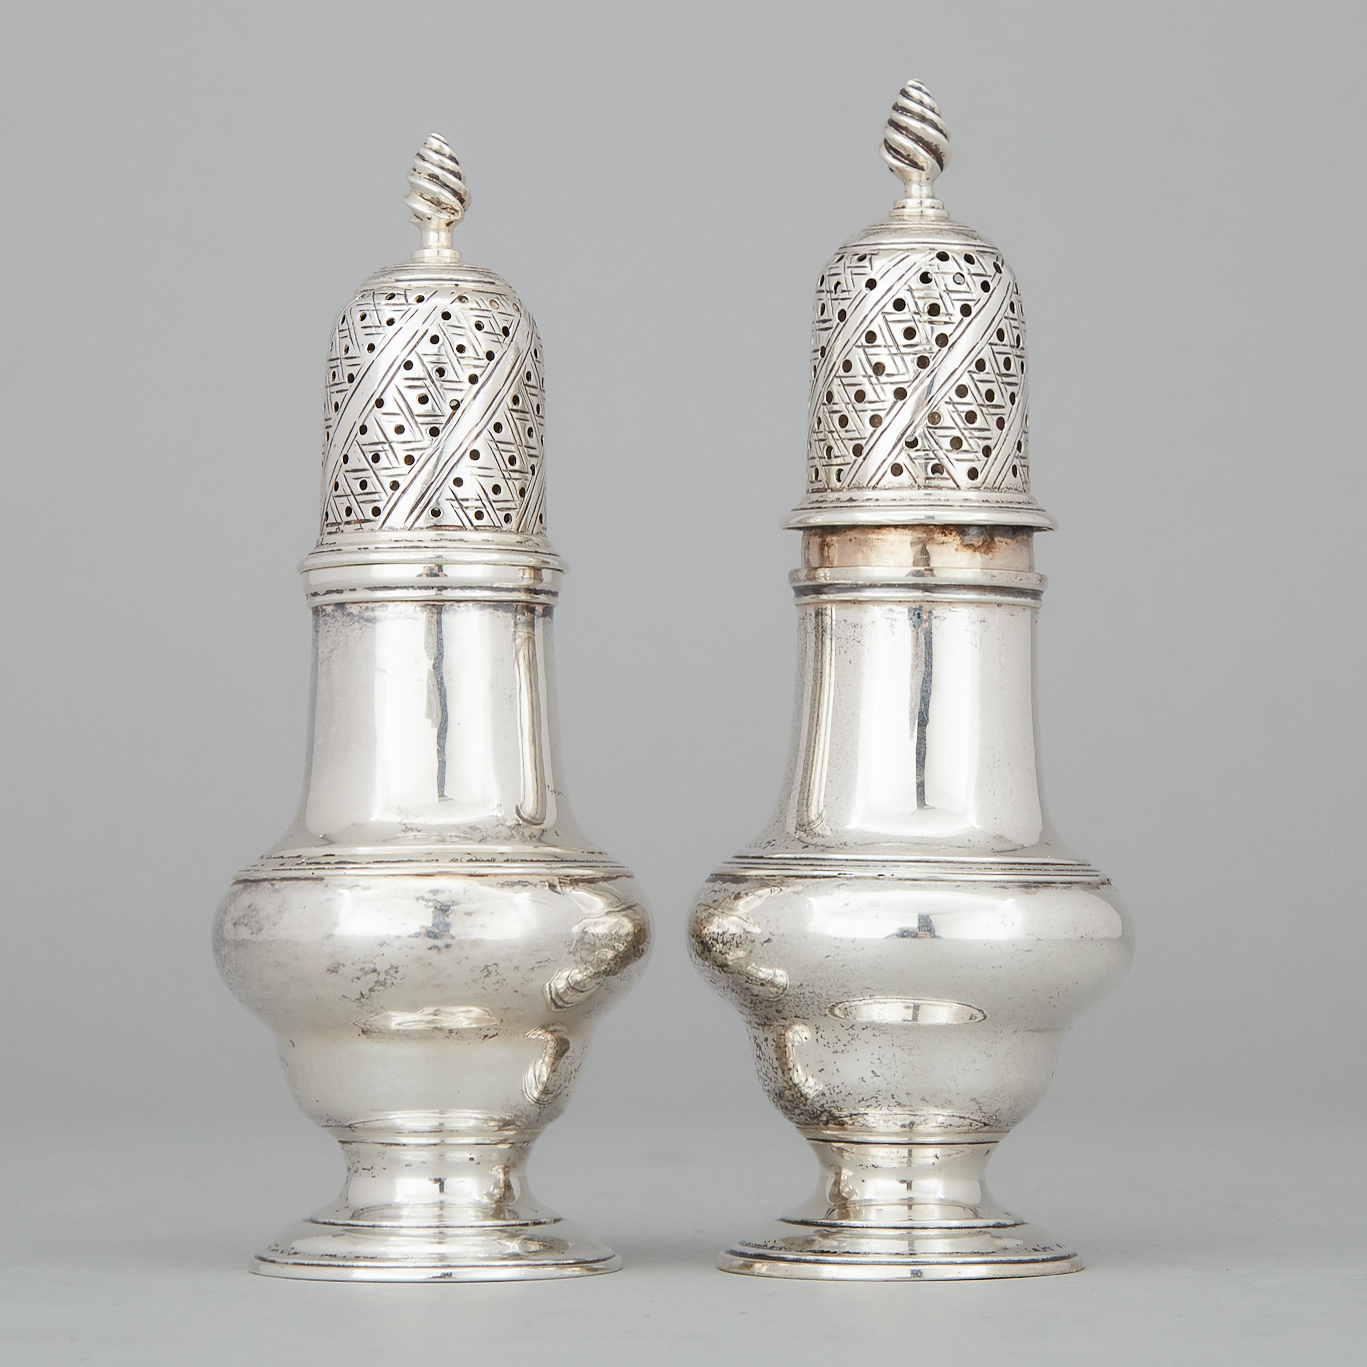 Pair of George III Silver Baluster Casters, London, 1766